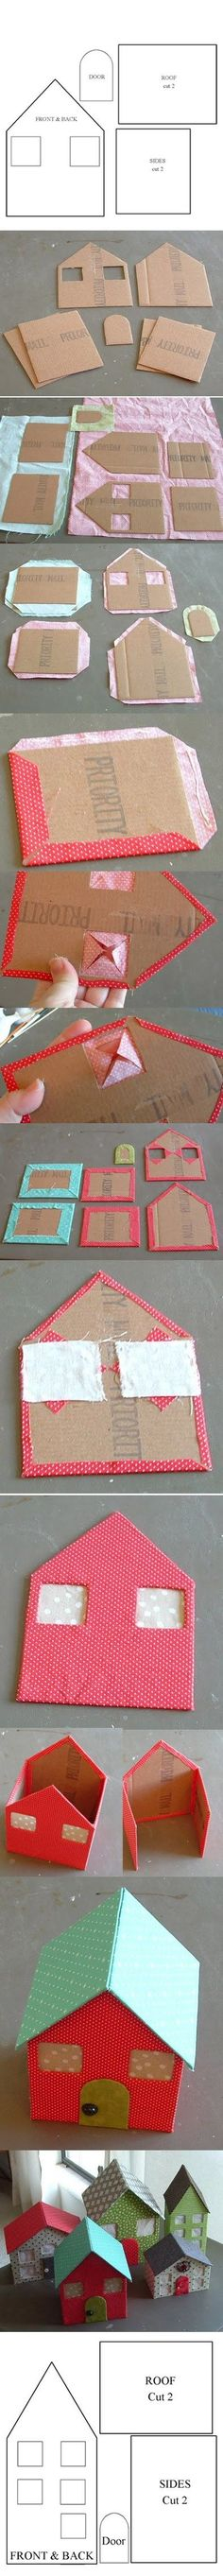 i'm thinking use different fabric and battery tea lights to make a christmas village. to make a How To: Make Your Own Doll House From Cardboard & Fabric Kids Crafts, Diy And Crafts, Arts And Crafts, Cardboard Crafts, Paper Crafts, Diy Projects To Try, Craft Projects, Christmas Crafts, Christmas Decorations